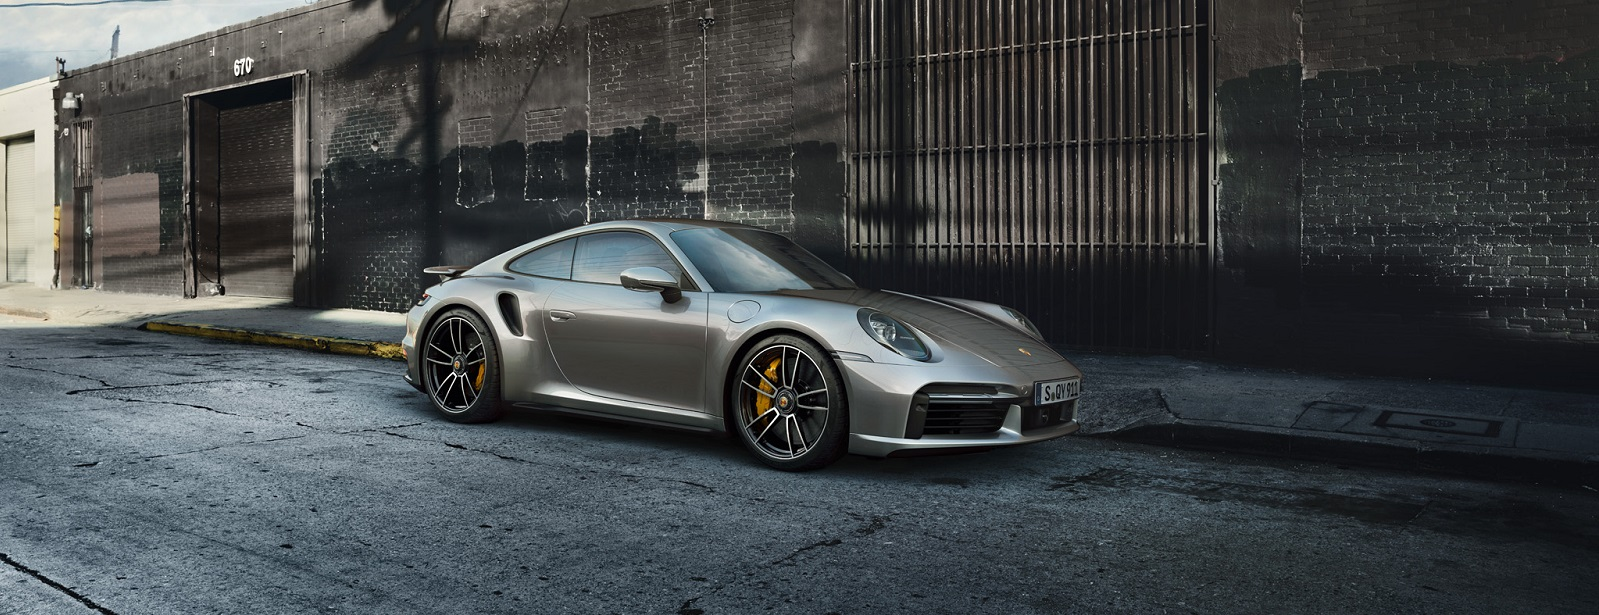 New 911 Turbo S.